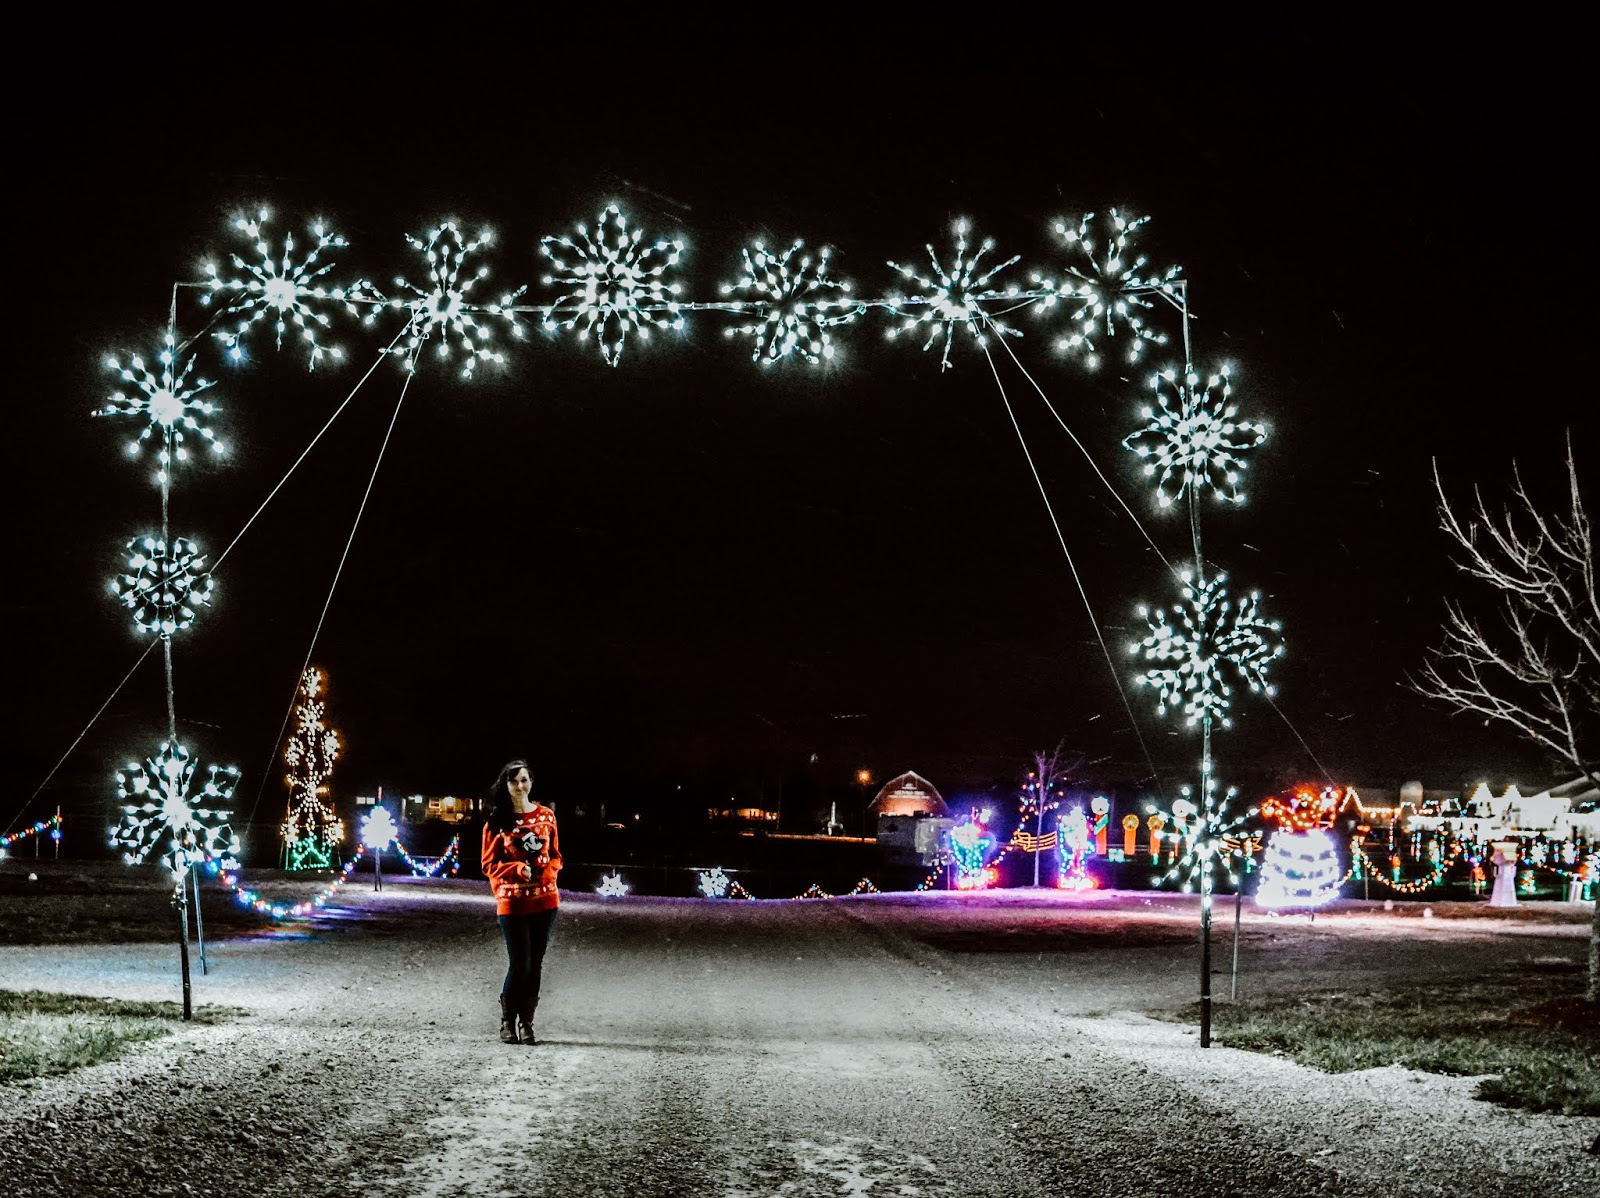 Shipshewana Lights of Joy